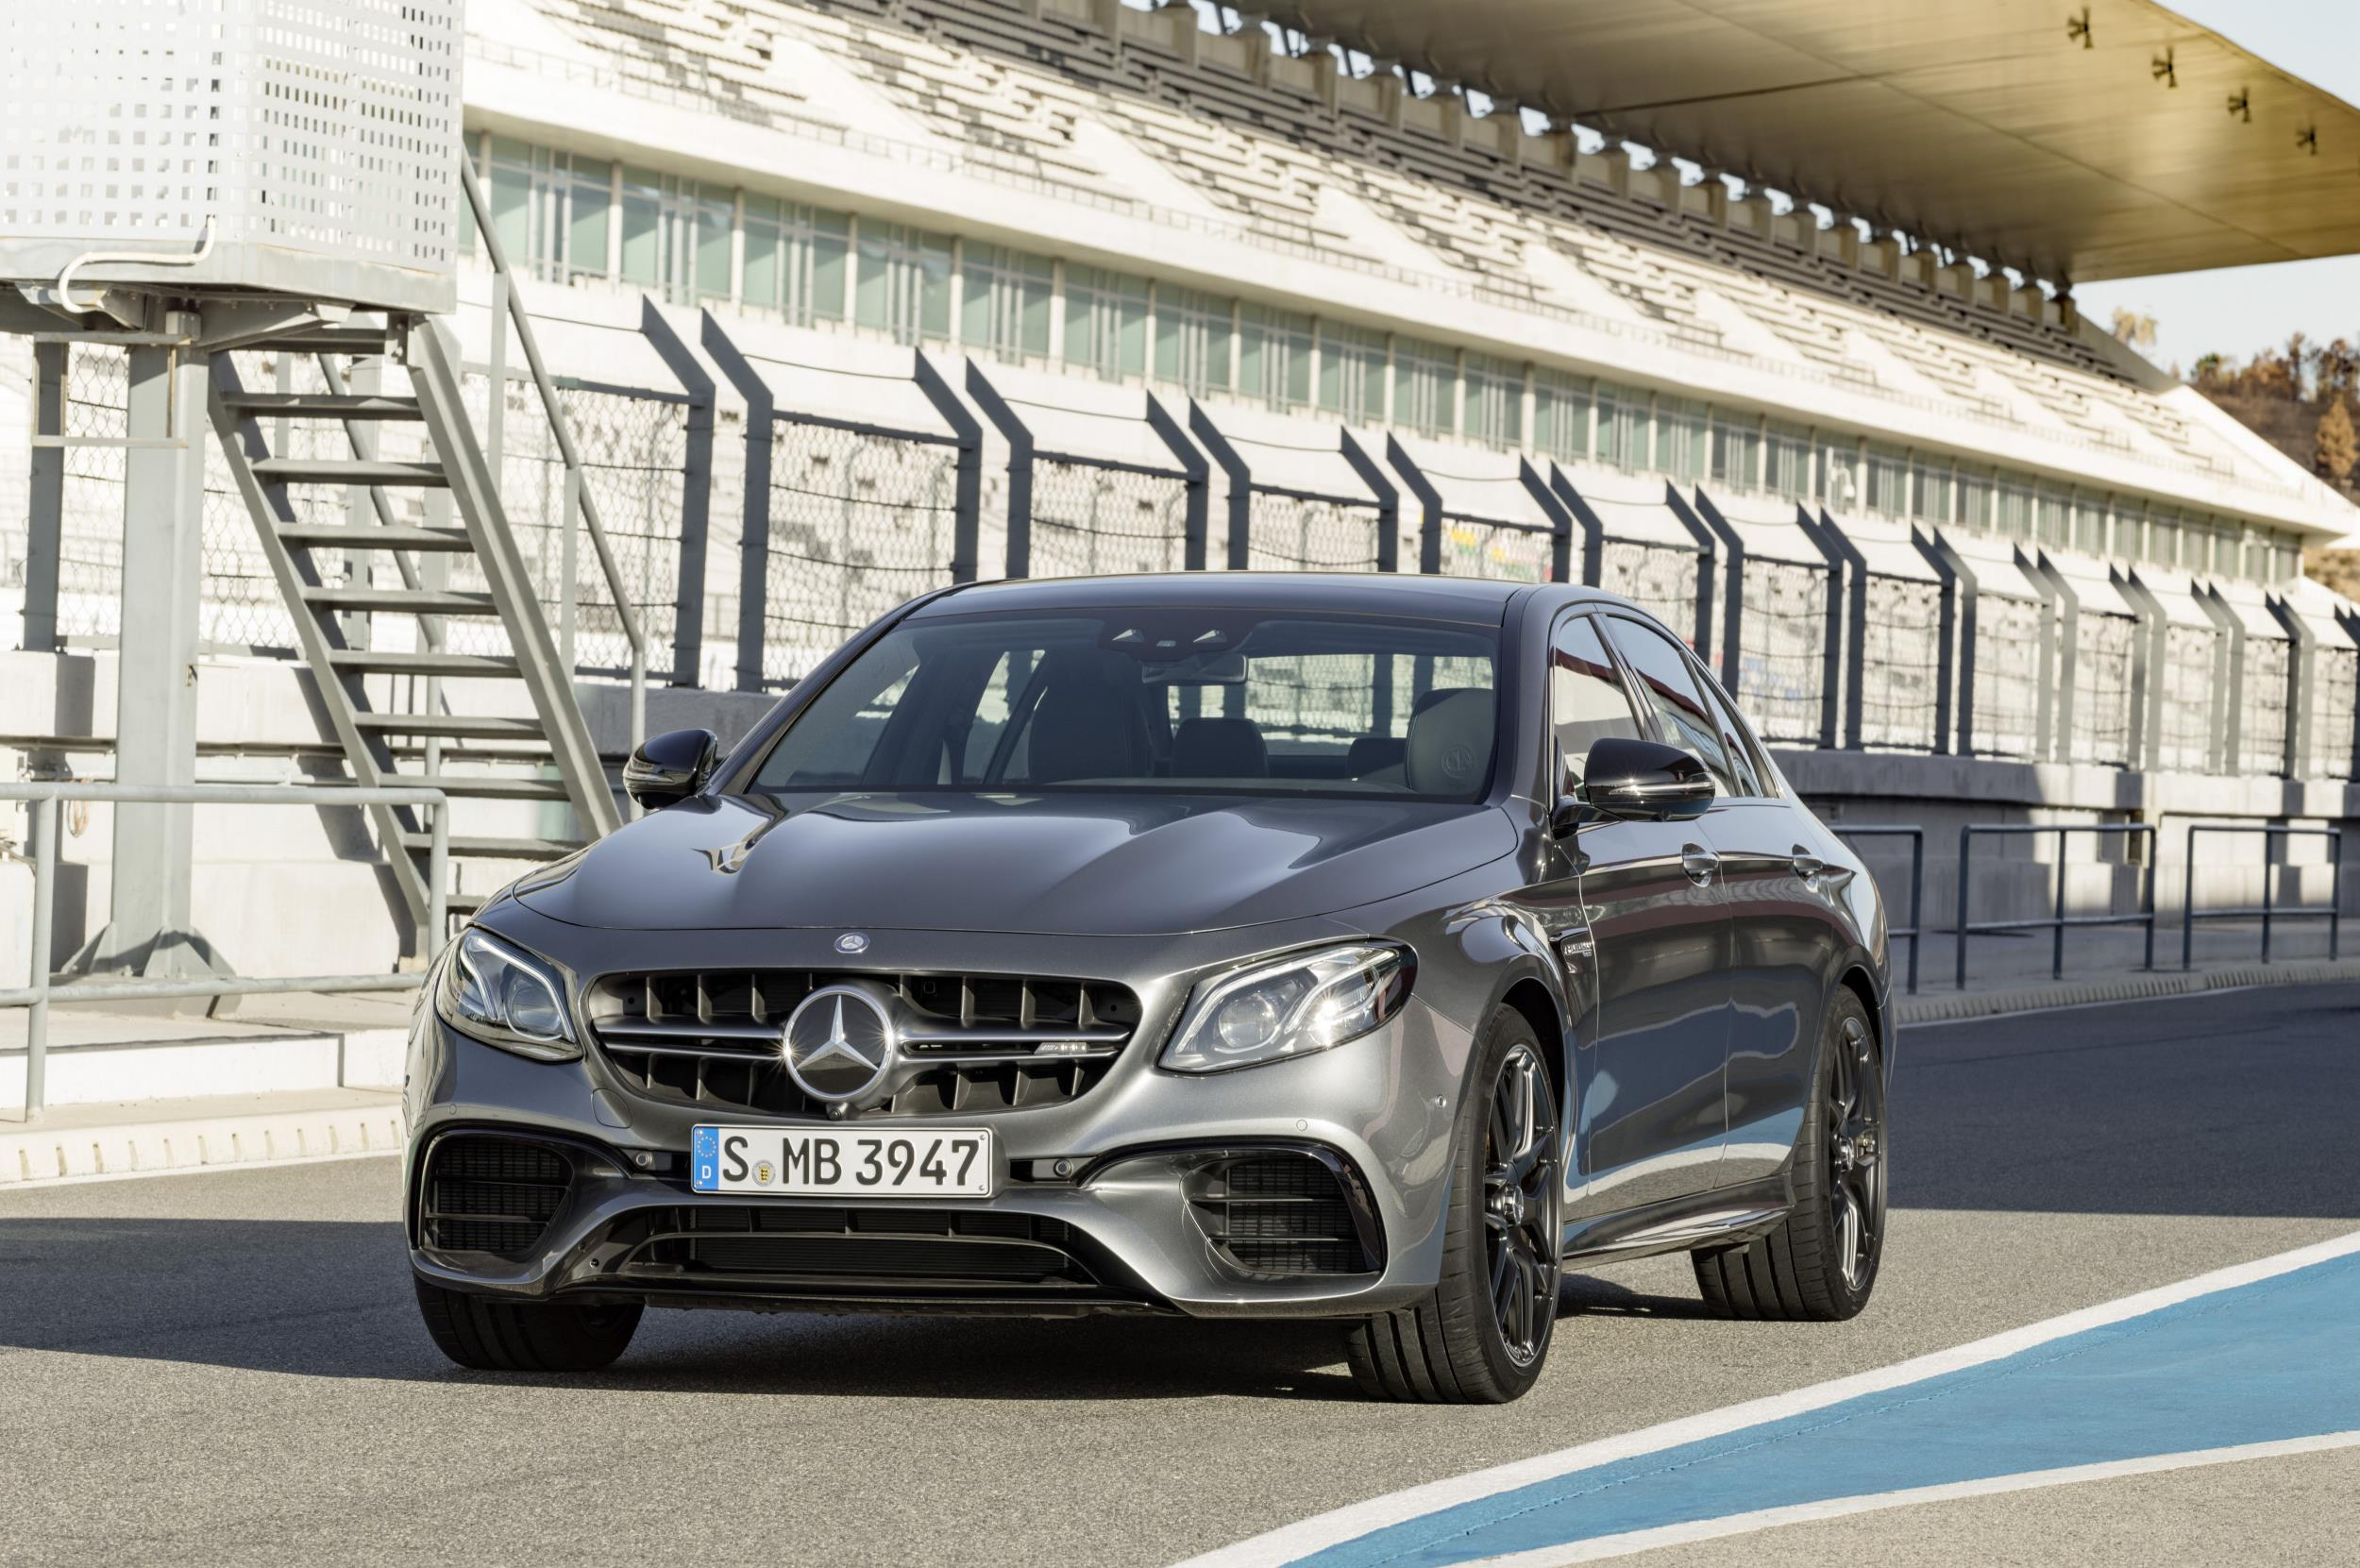 Mercedes Benz Uk Prices E63 4matic Sedan From Gbp 78 935